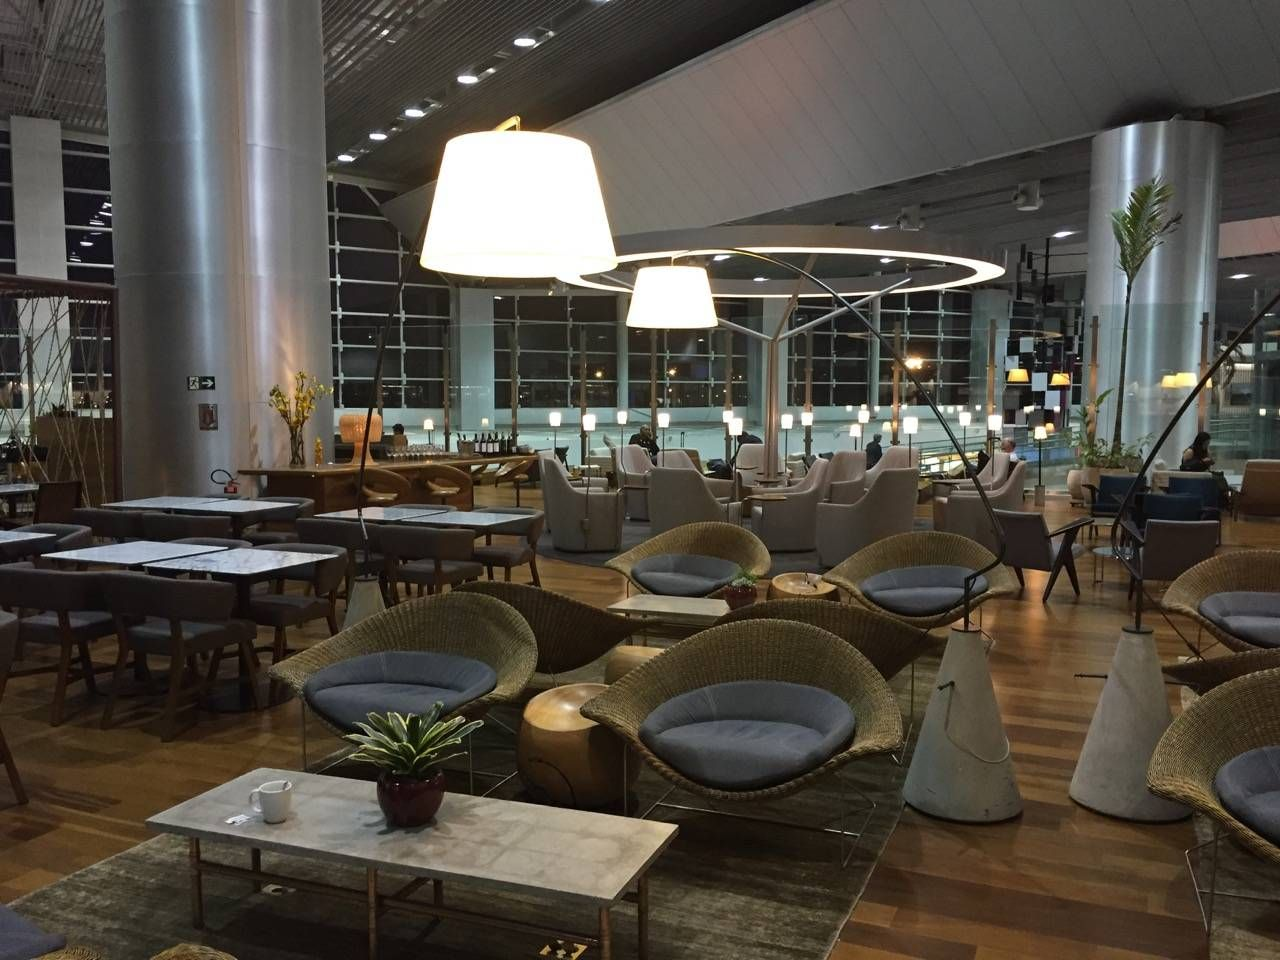 Star Alliance Lounge GRU-020